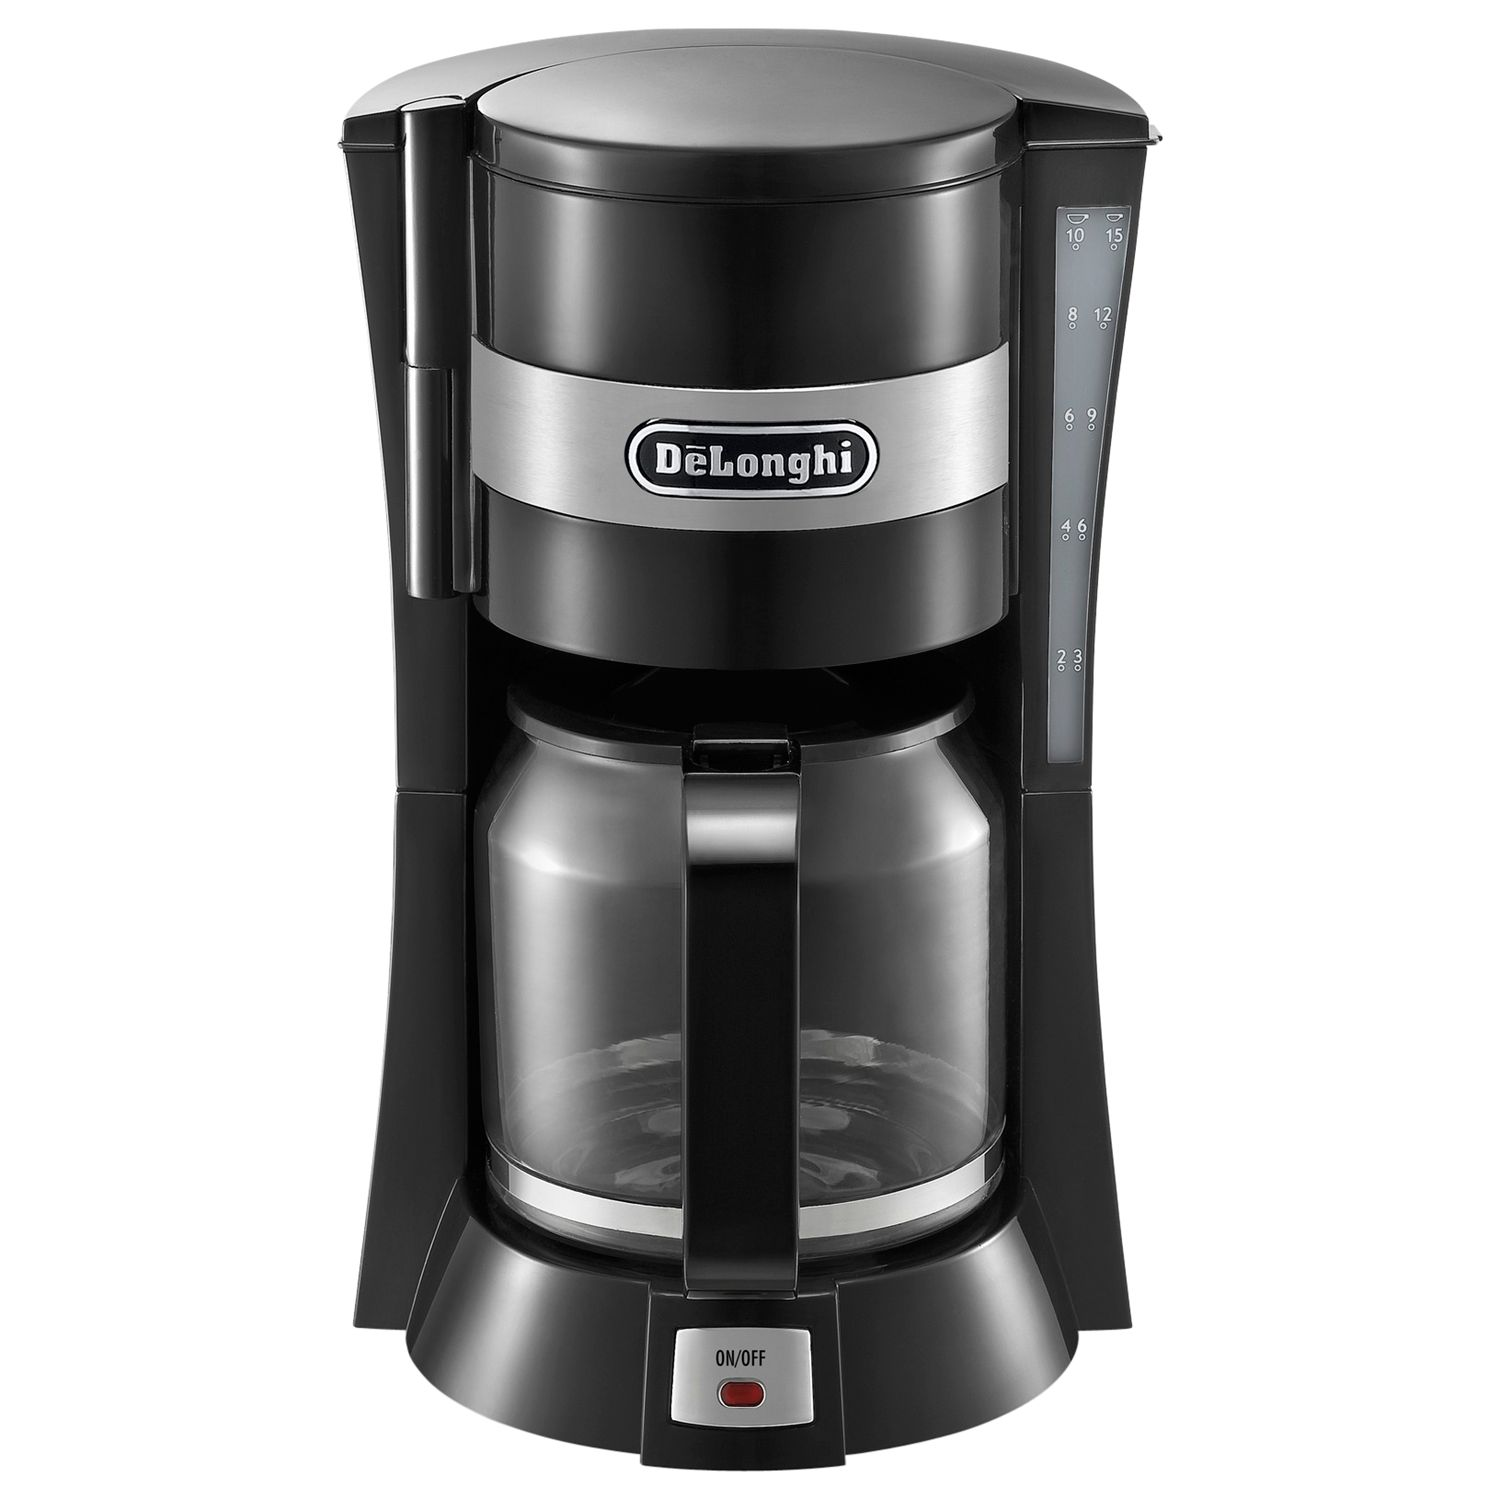 Morphy Richards Coffee Maker Model 47004 : Buy De Longhi ICM15210 Filter Coffee Maker, Black John Lewis